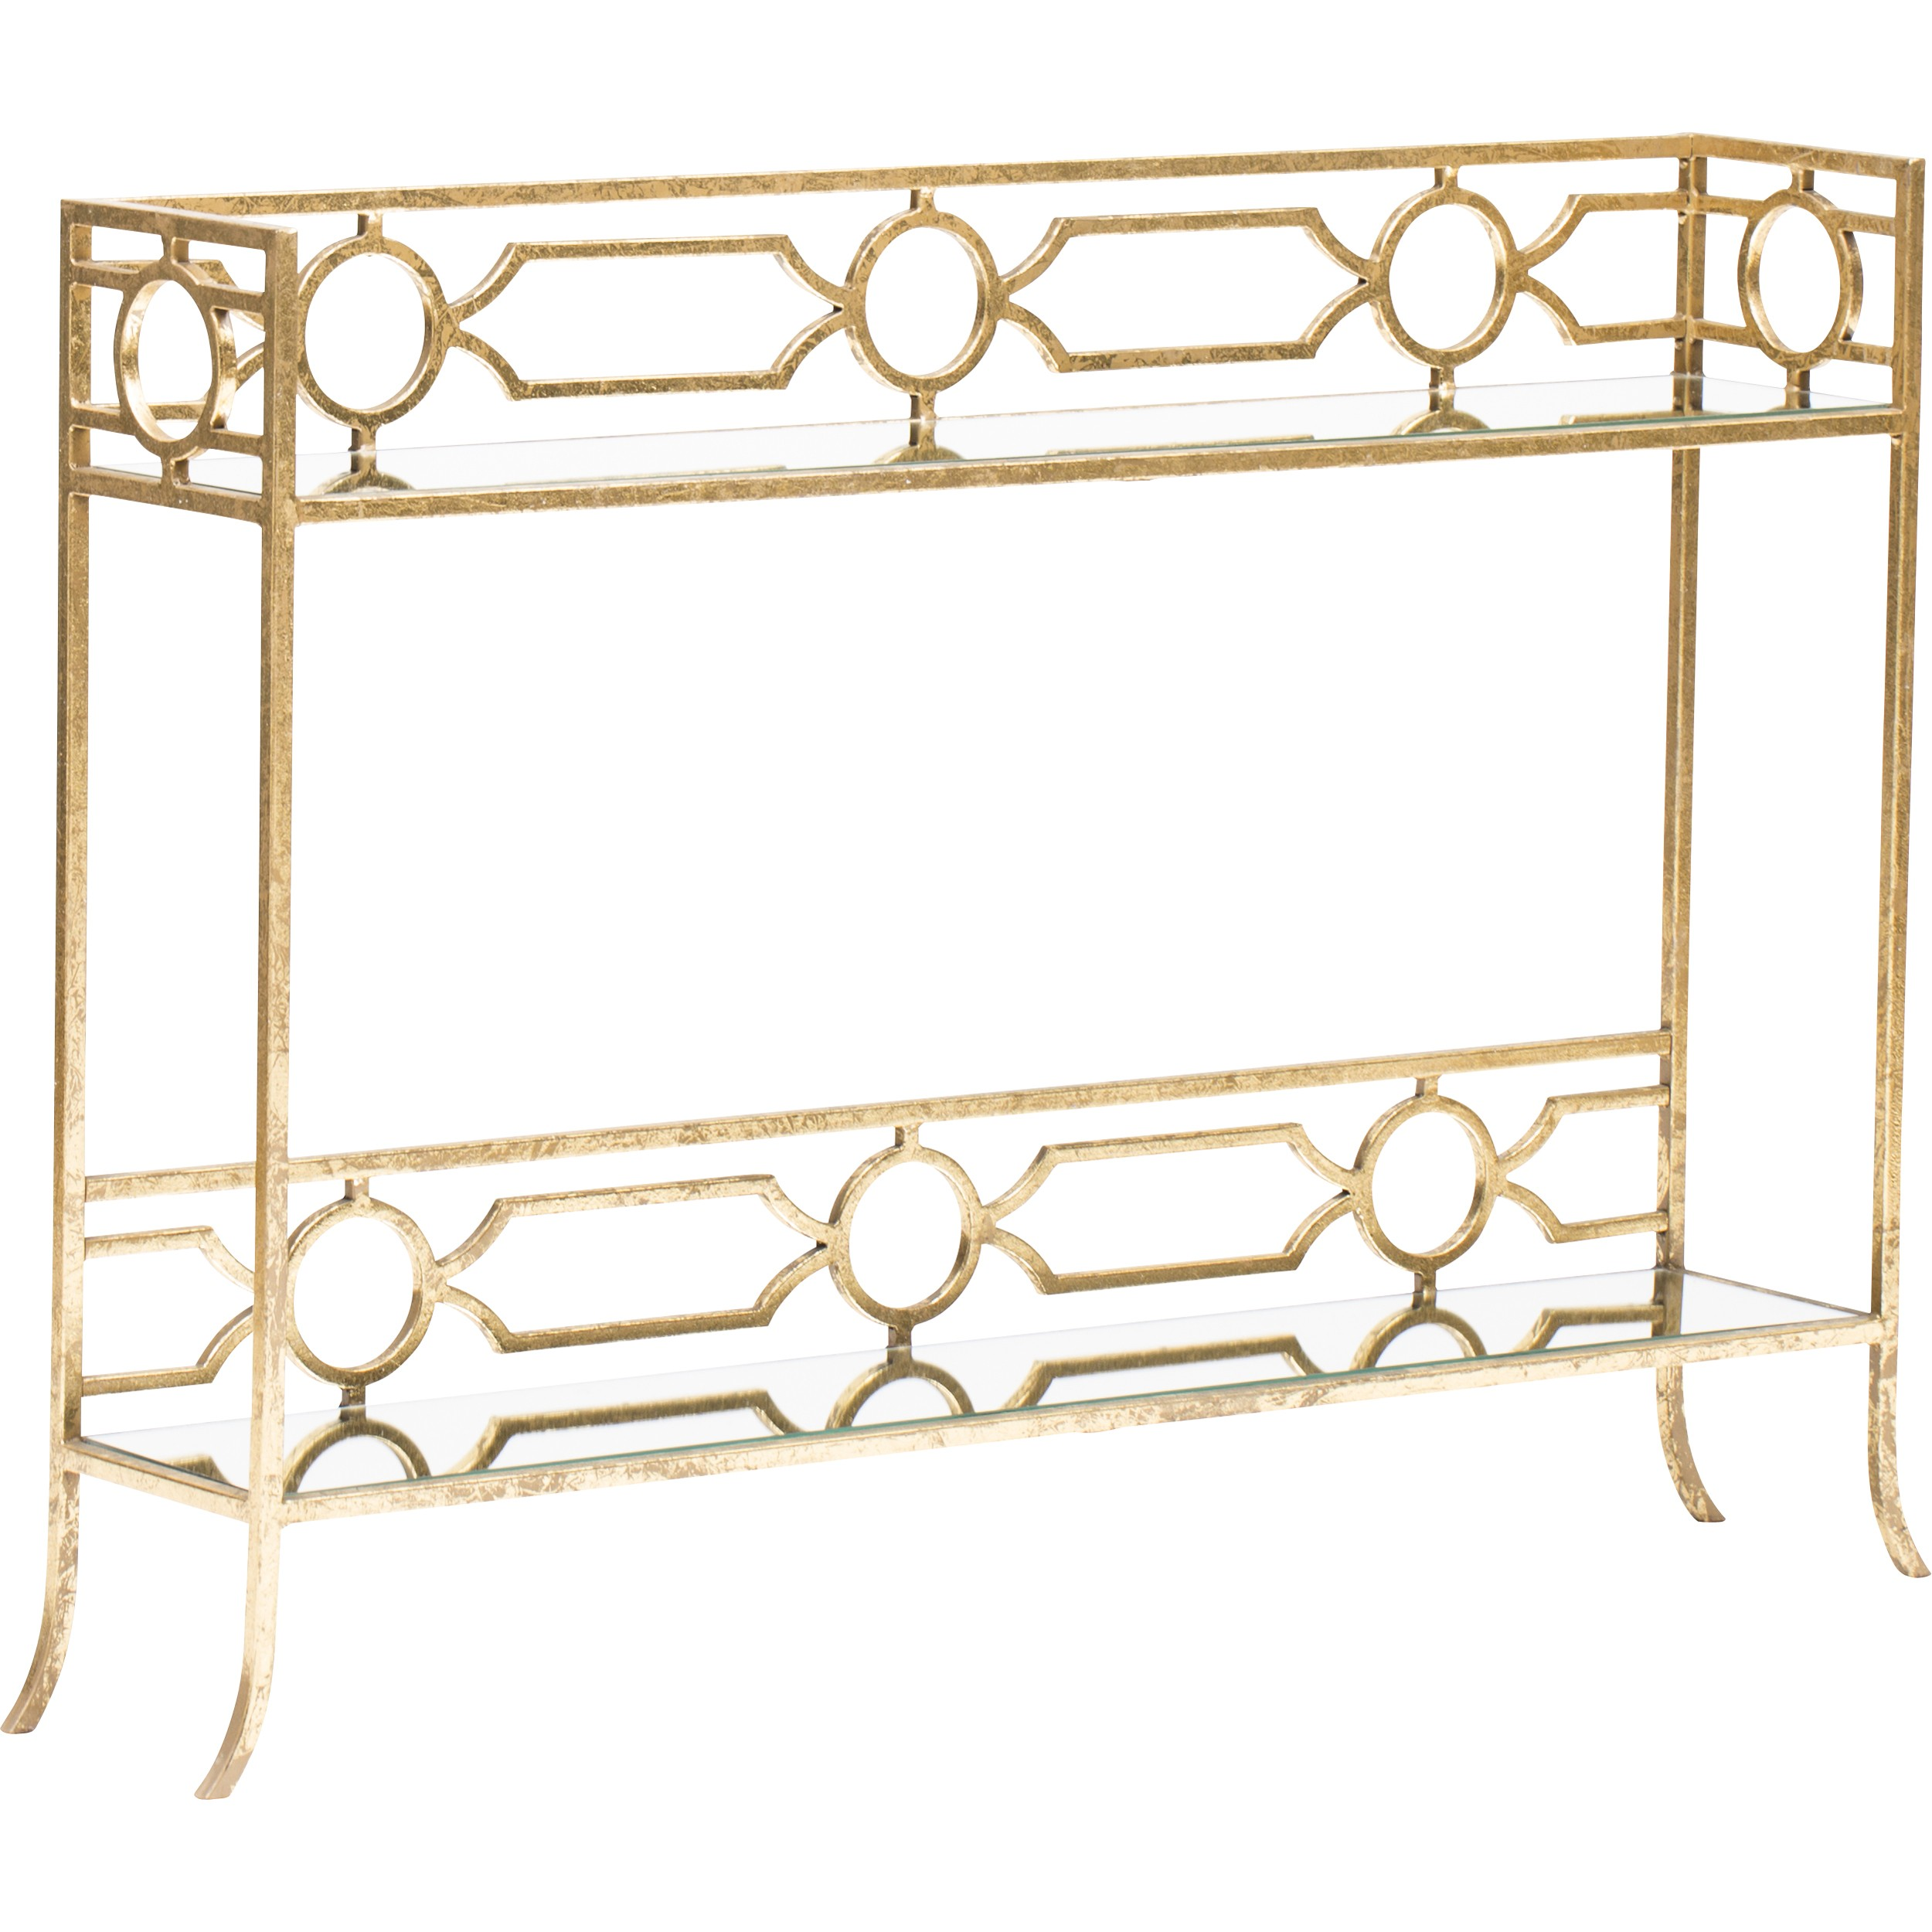 regina andrews geometric shelf console gold accent table furniture tables narrow black end mango wood stackable outdoor patio swing tennis glass nightstand rose side drummer stool